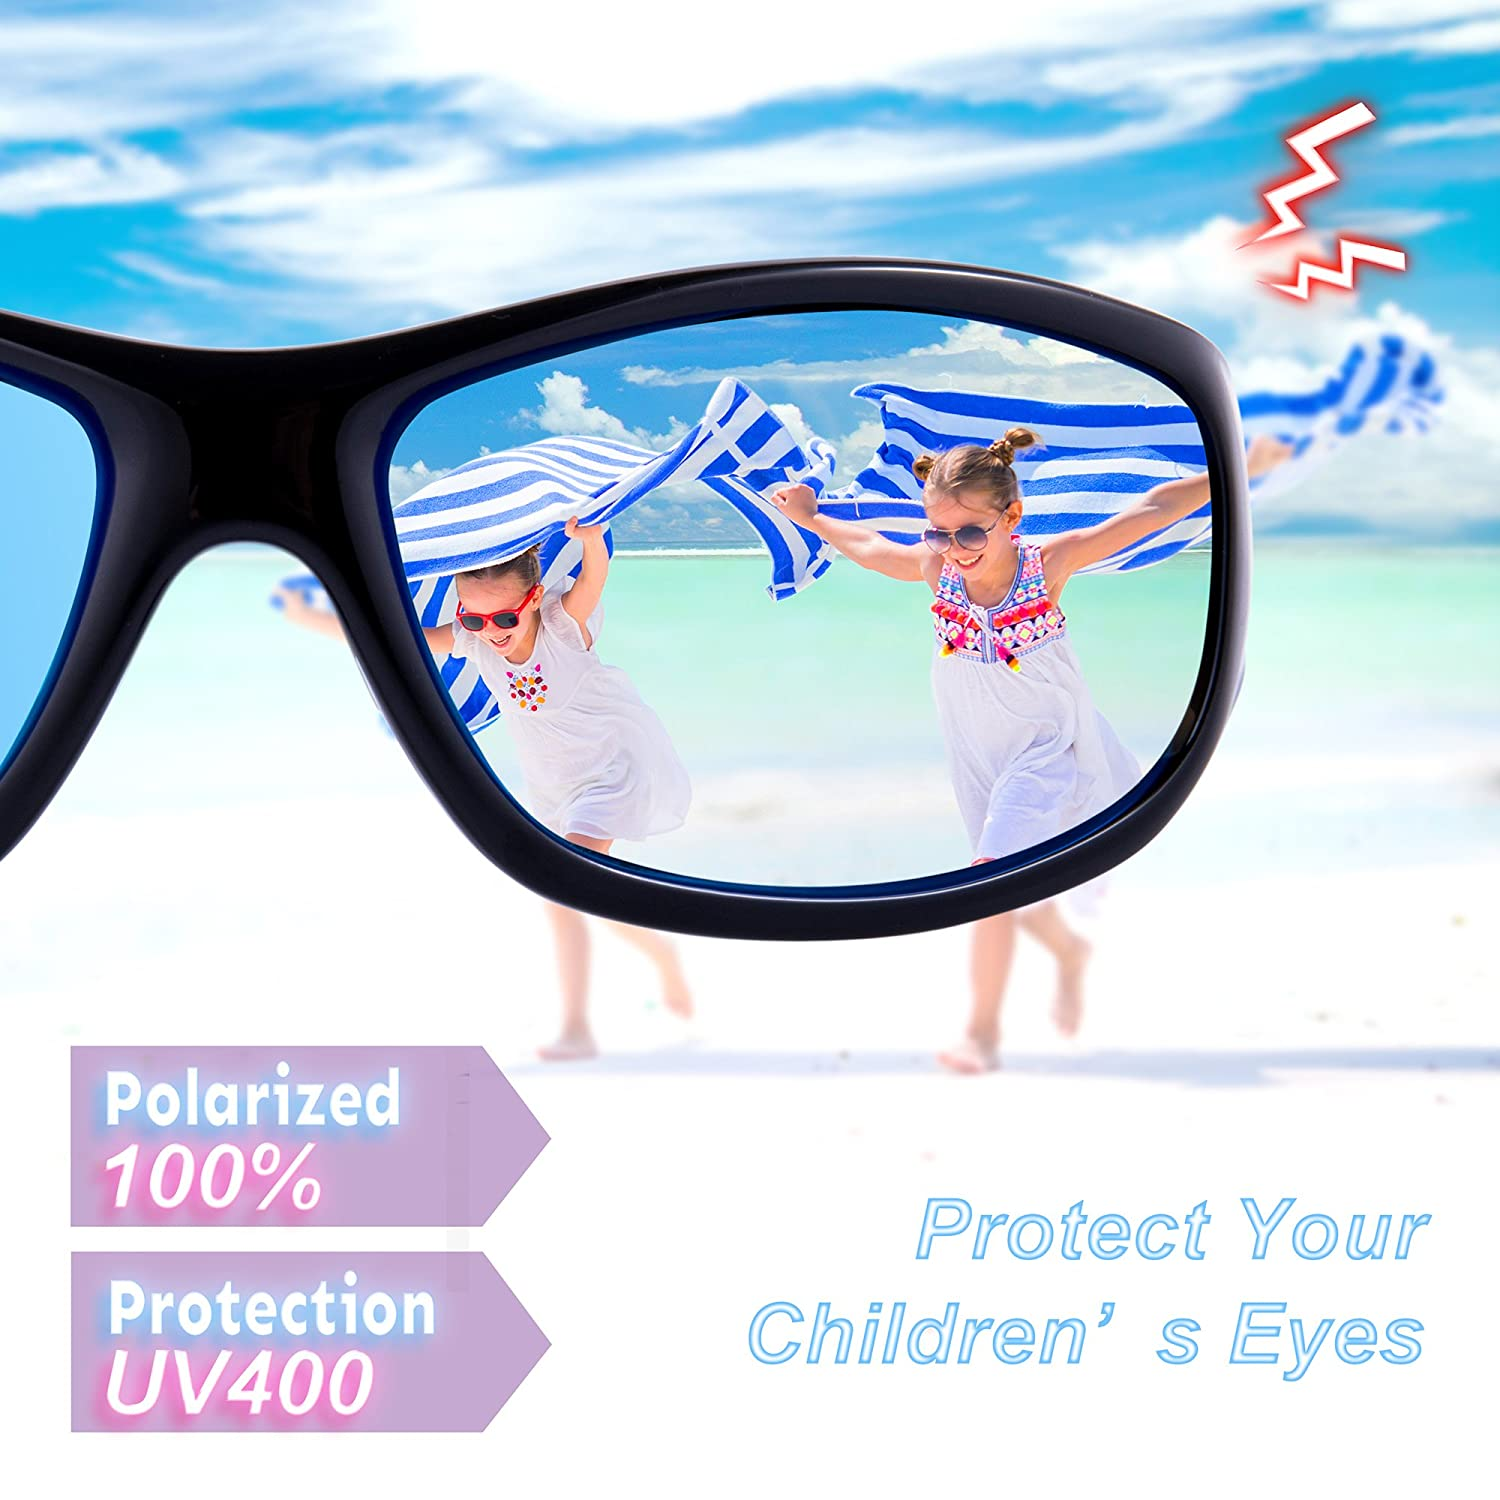 87f0a16fb91 Amazon.com  RIVBOS Rubber Kids Polarized Sunglasses With Strap Glasses  shades for Boys Girls Baby and Children Age 3-10 RBK037 (Black Black